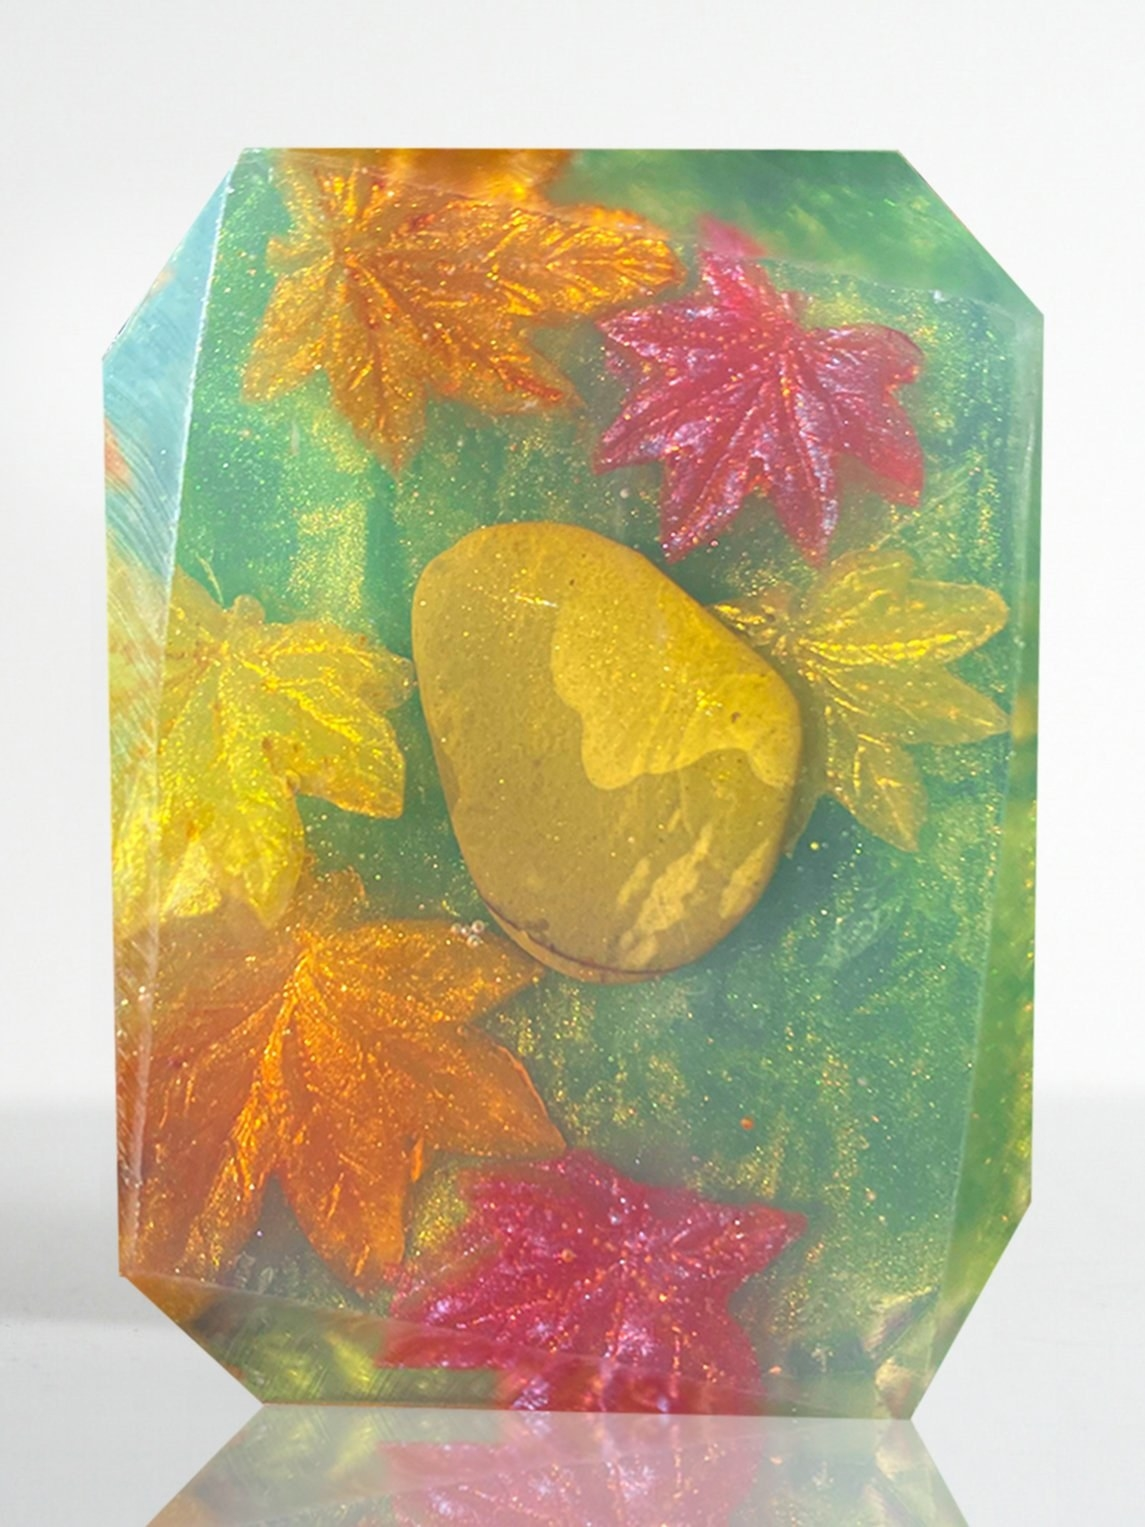 a bar of soap with leaves in it and a crystal stone